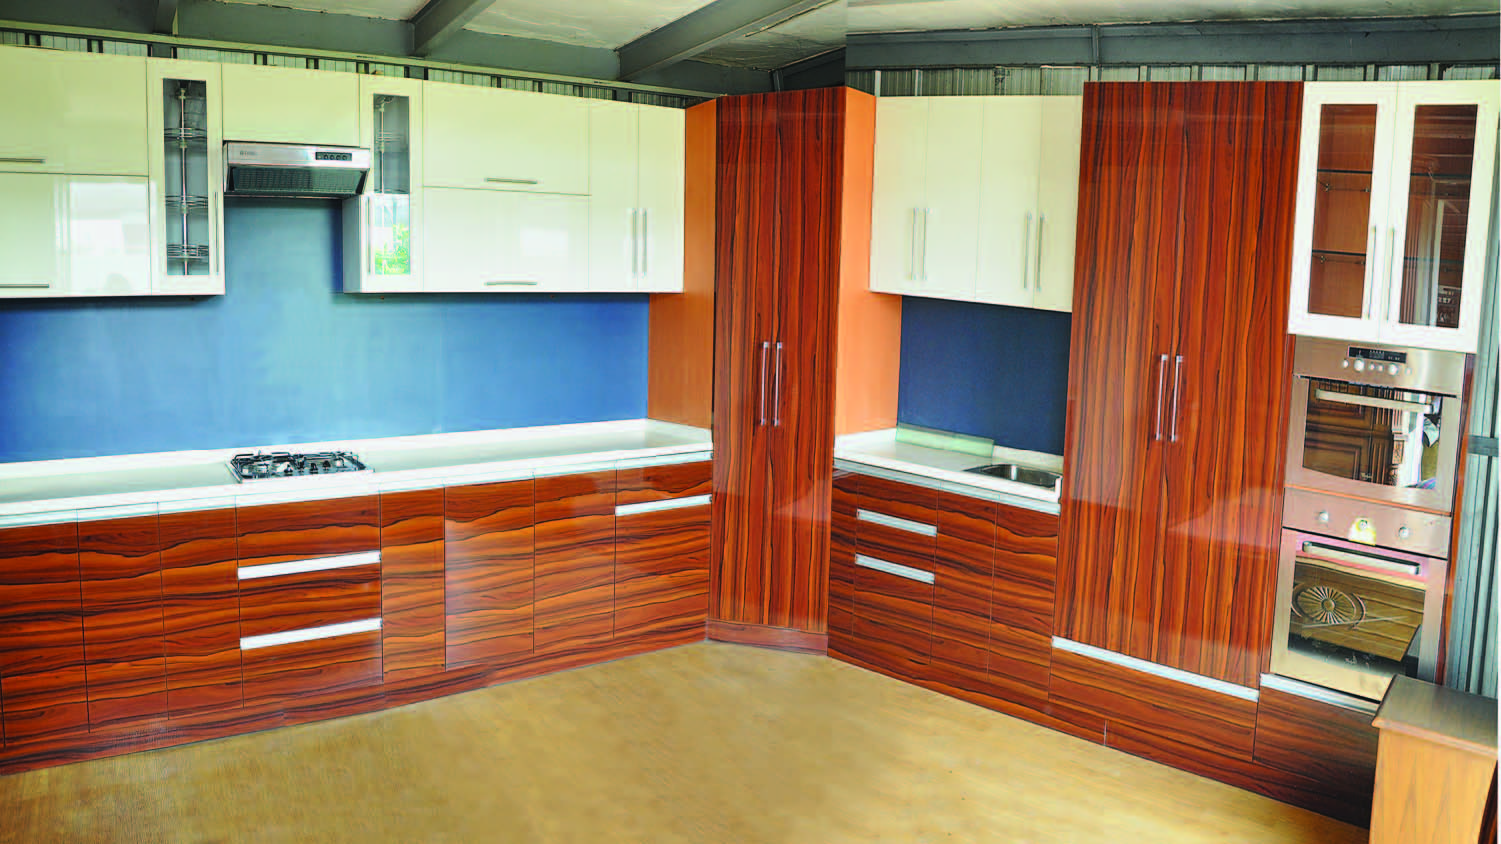 New model kitchen cabinets in kerala joy studio design for New model kitchen